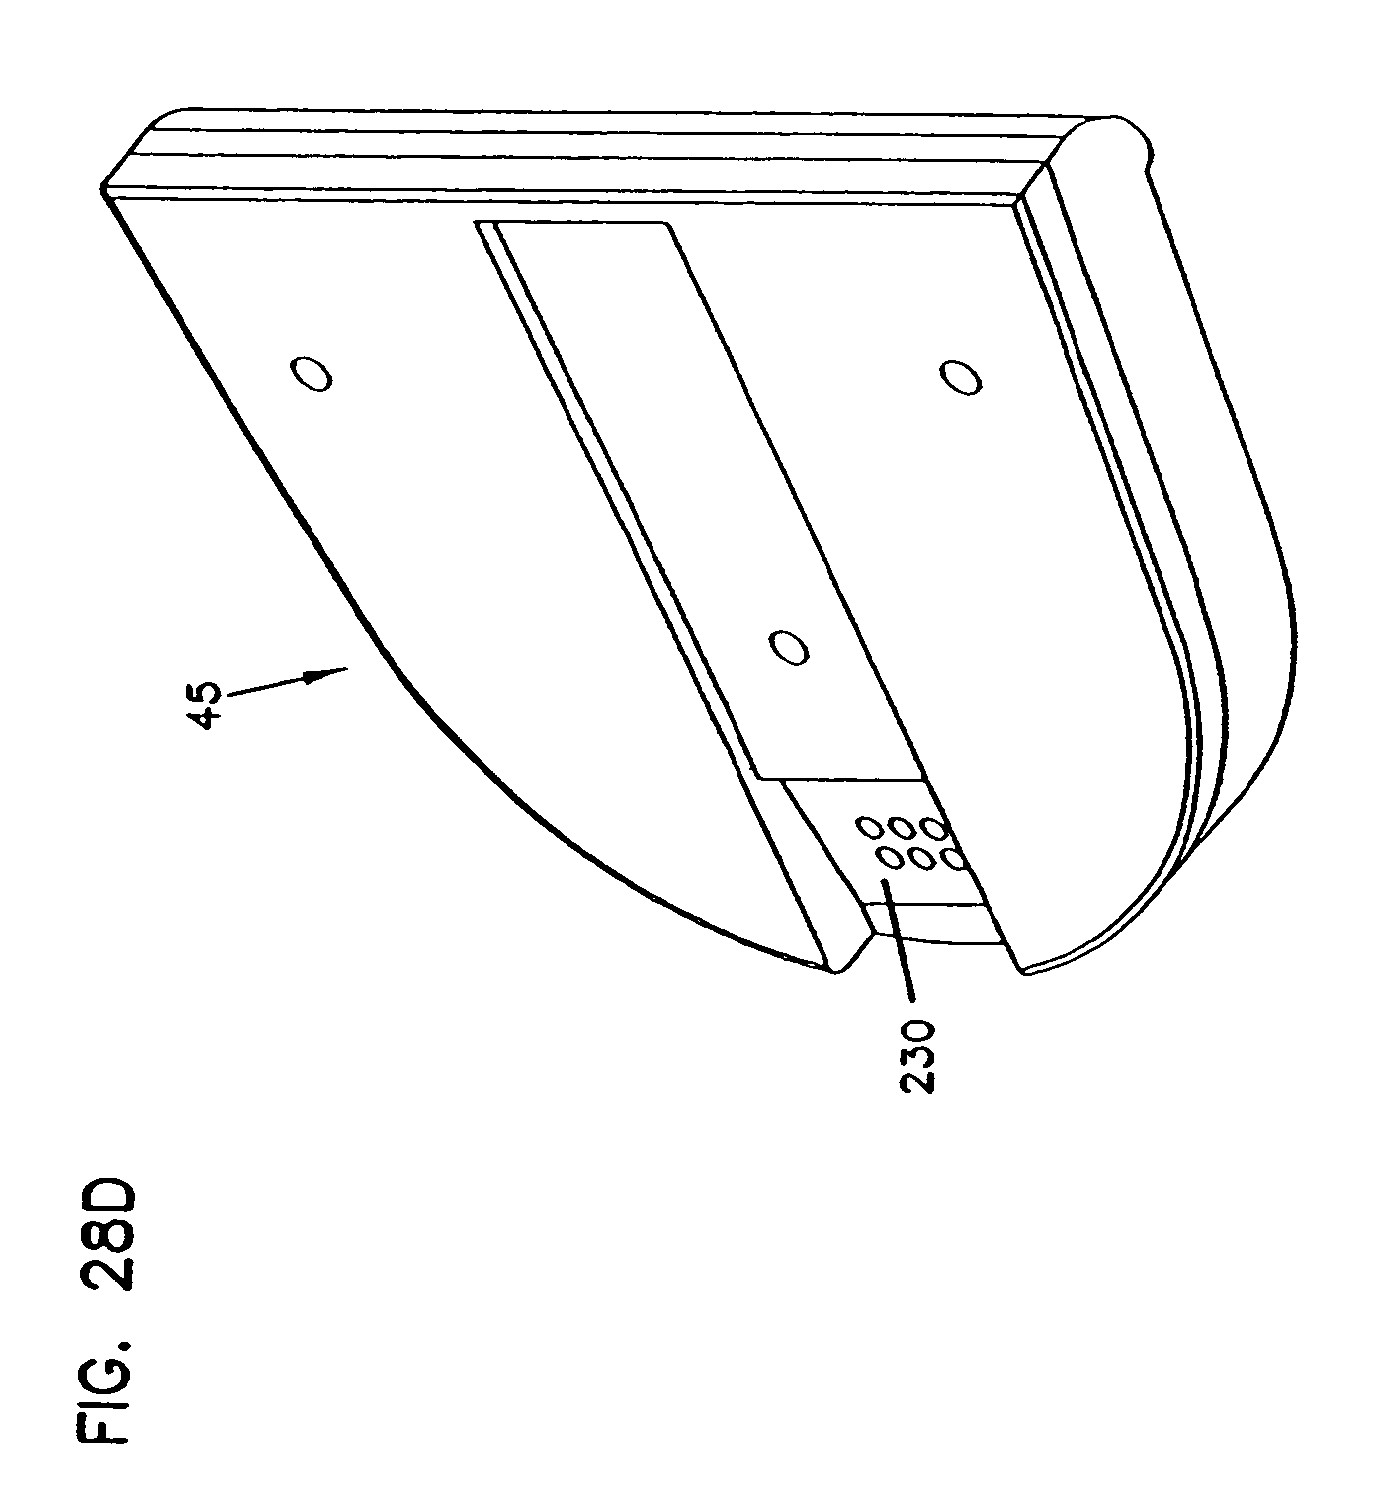 US8744545B2 - yte monitoring device and methods of use ... on